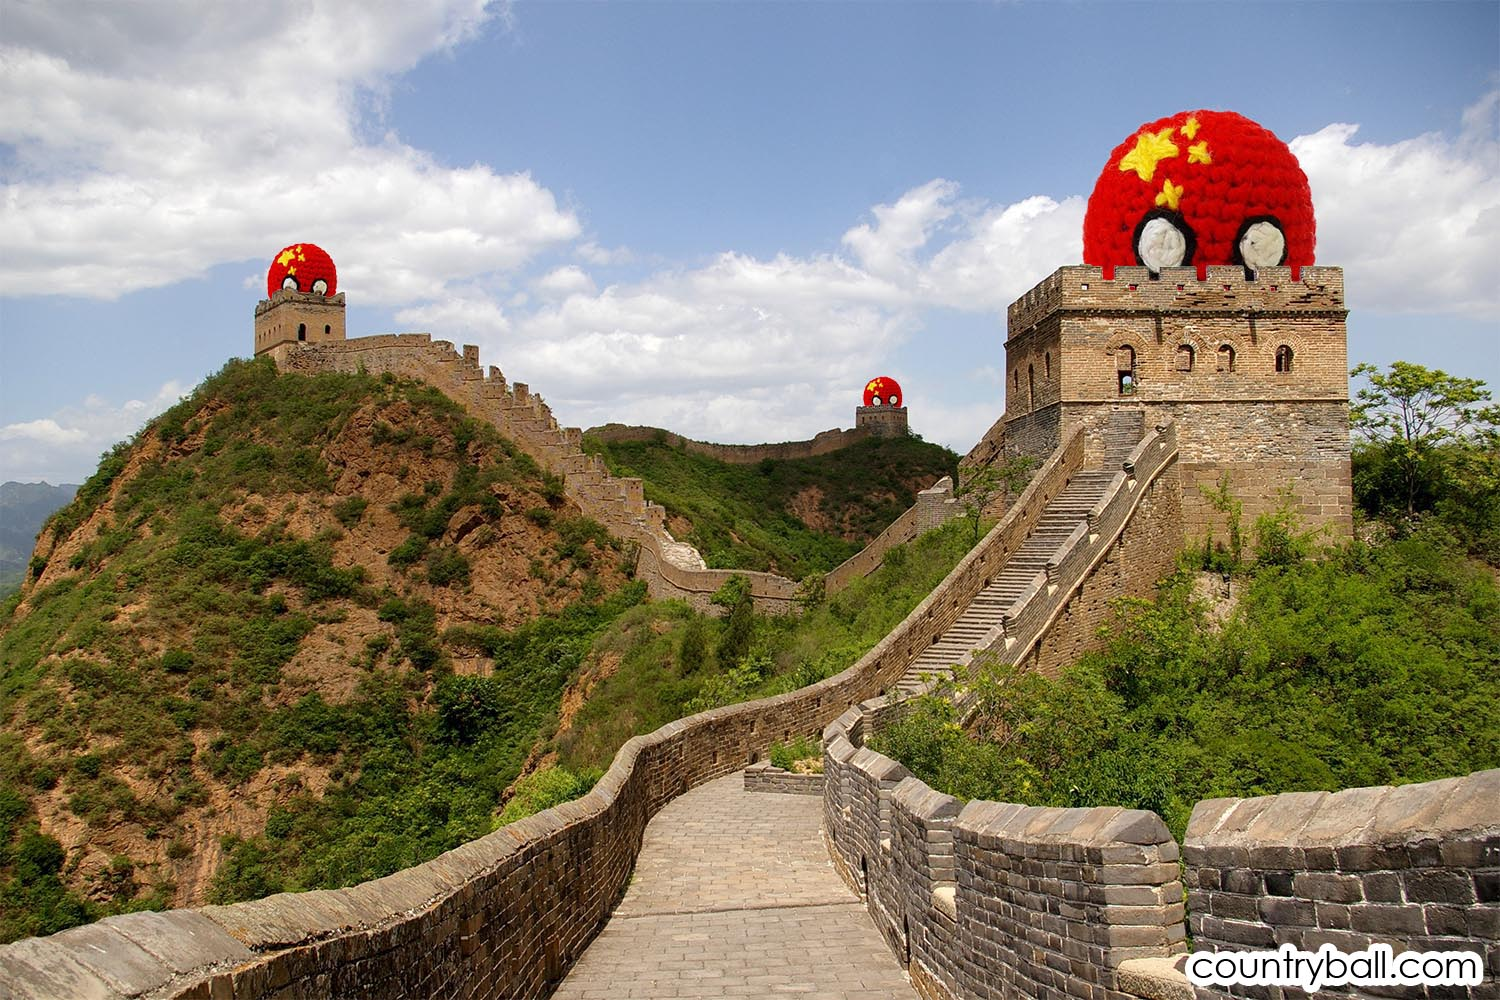 Chinaball guarding the Great Wall of China